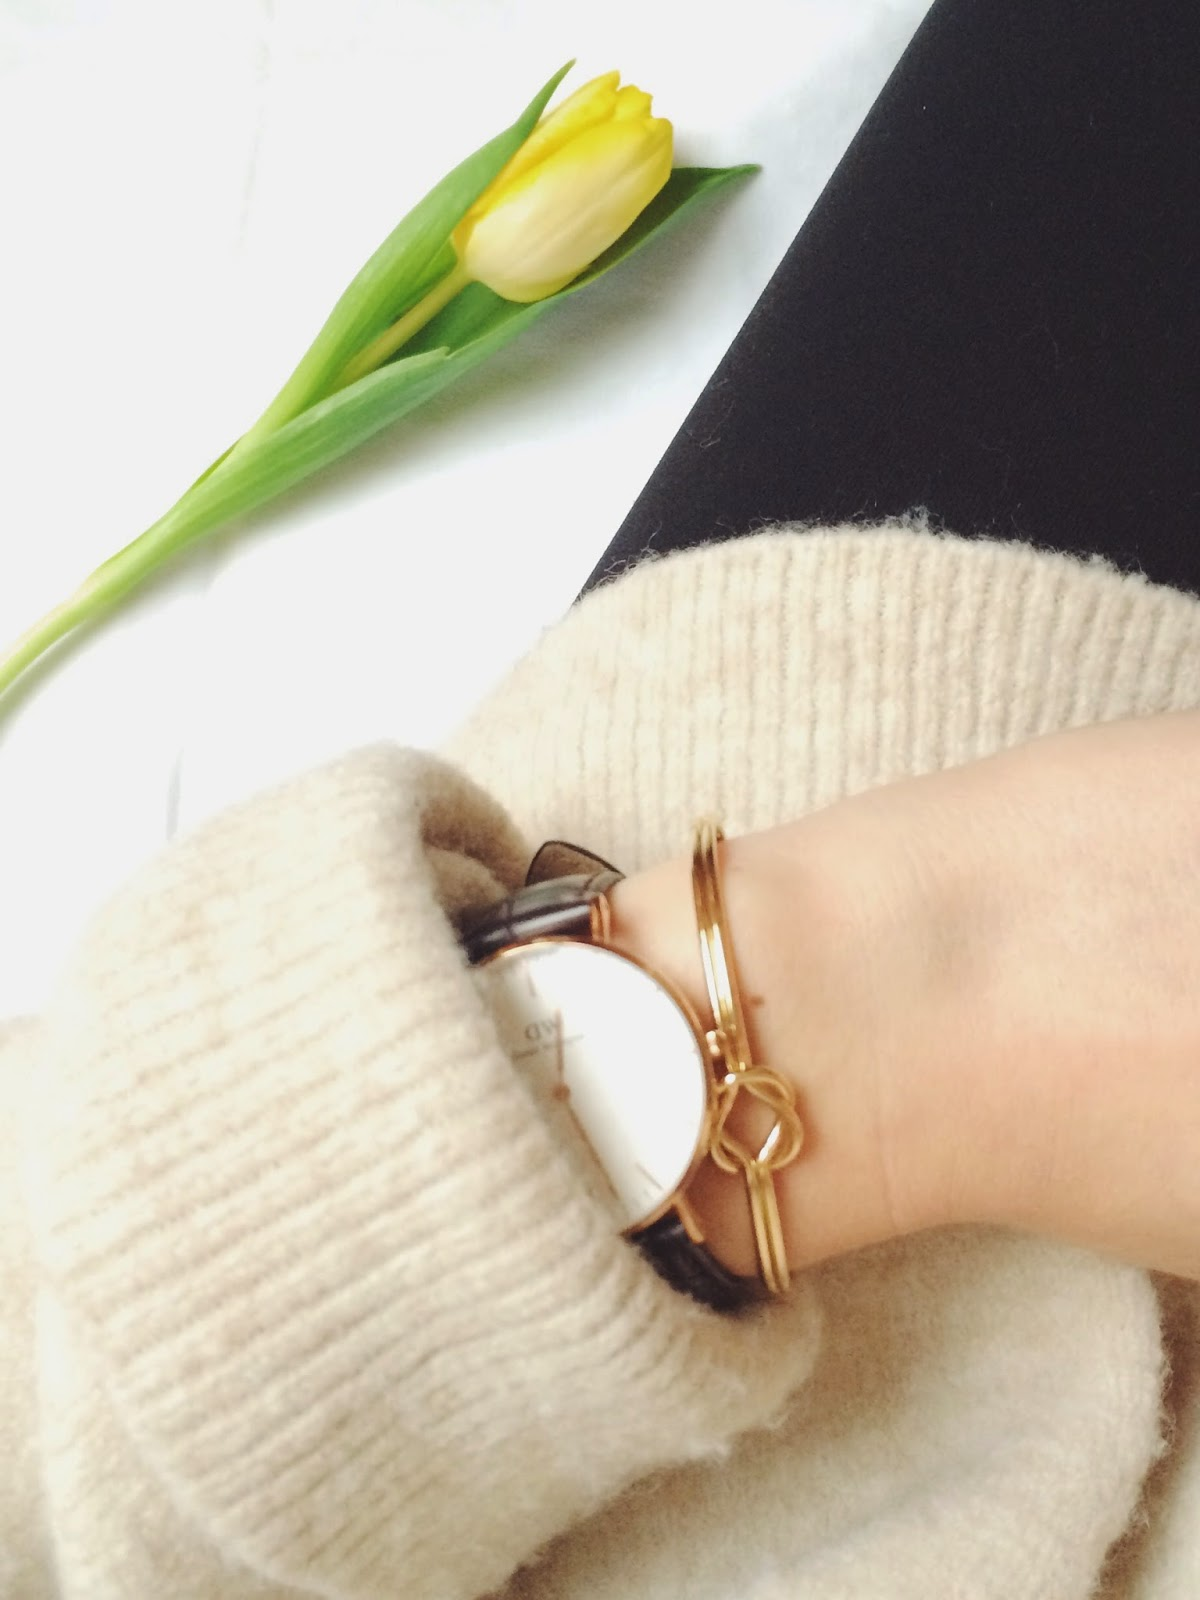 knot cuff, knot bracelet, asos knot bracelet, daniel wellington watch, daniel wellington york lady watch, gold knot bracelet